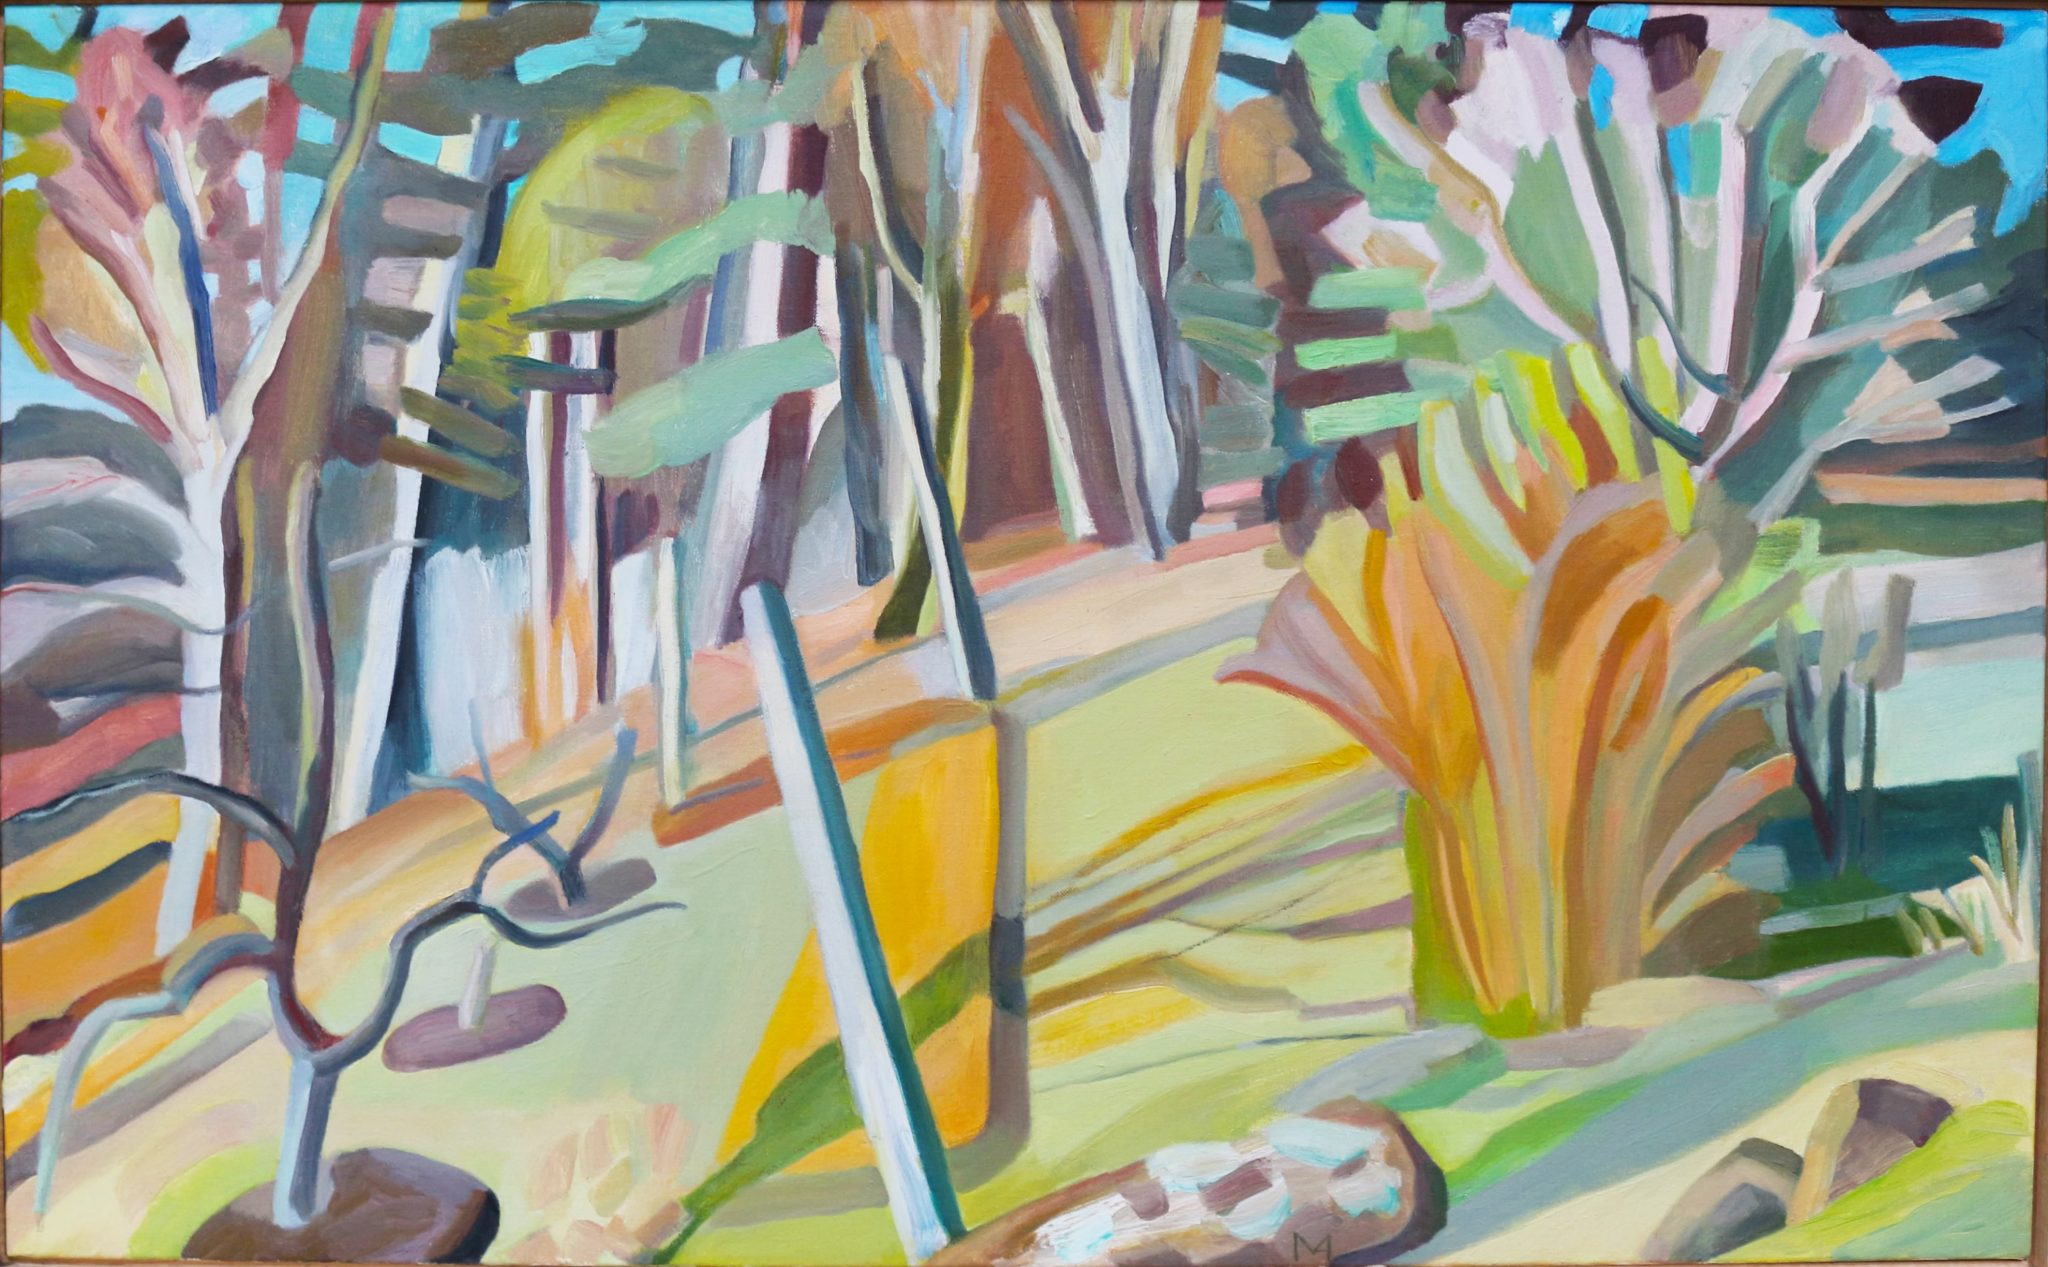 Oil on canvas painting of an artistic representation of a nearby forest by Martha Armstrong